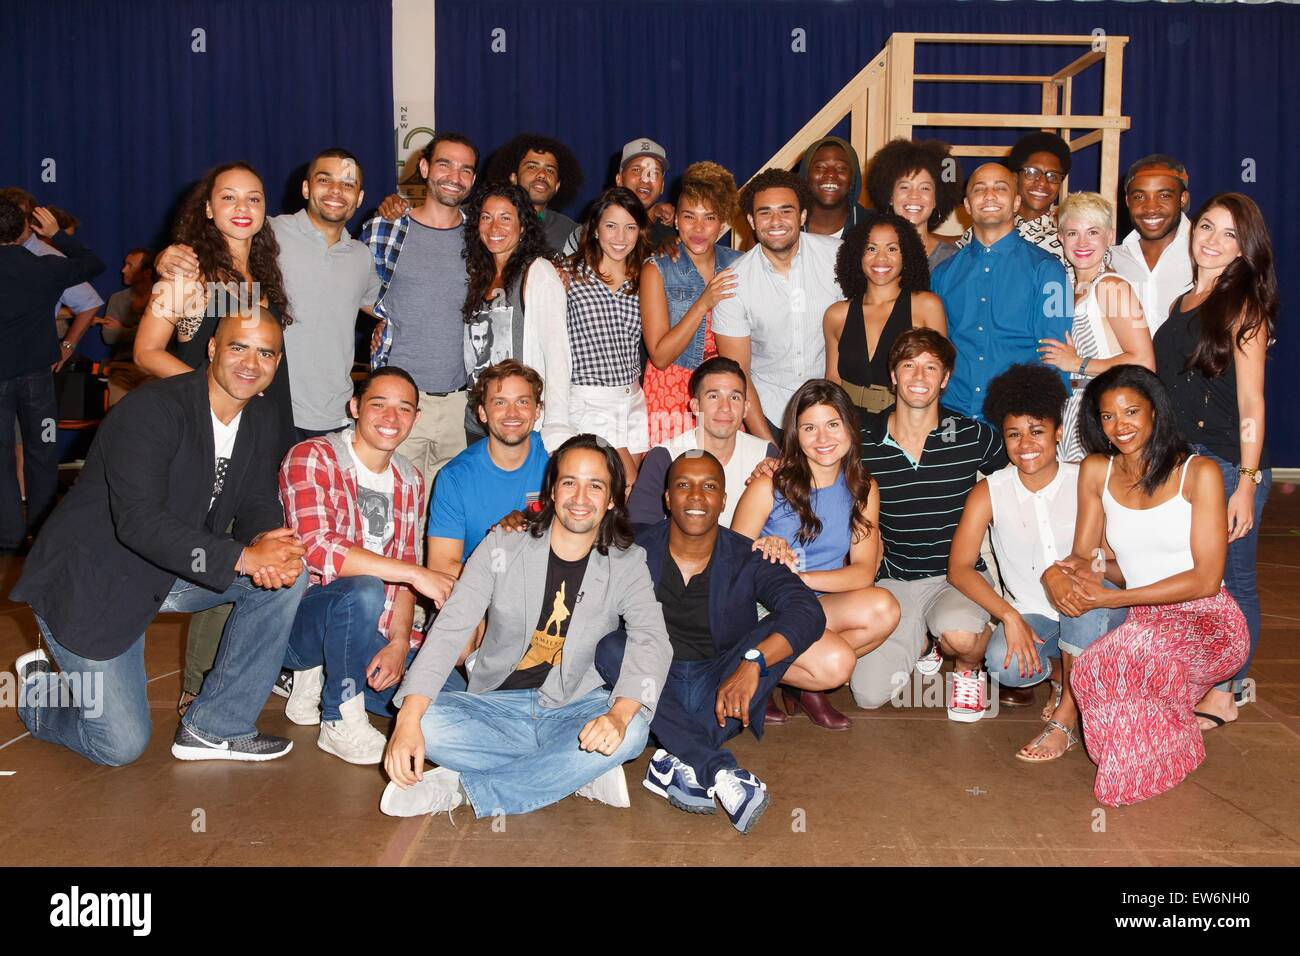 New York, NY, USA. 18th June, 2015. The cast of Hamilton in attendance for HAMILTON Begins Broadway Rehearsals, Stock Photo